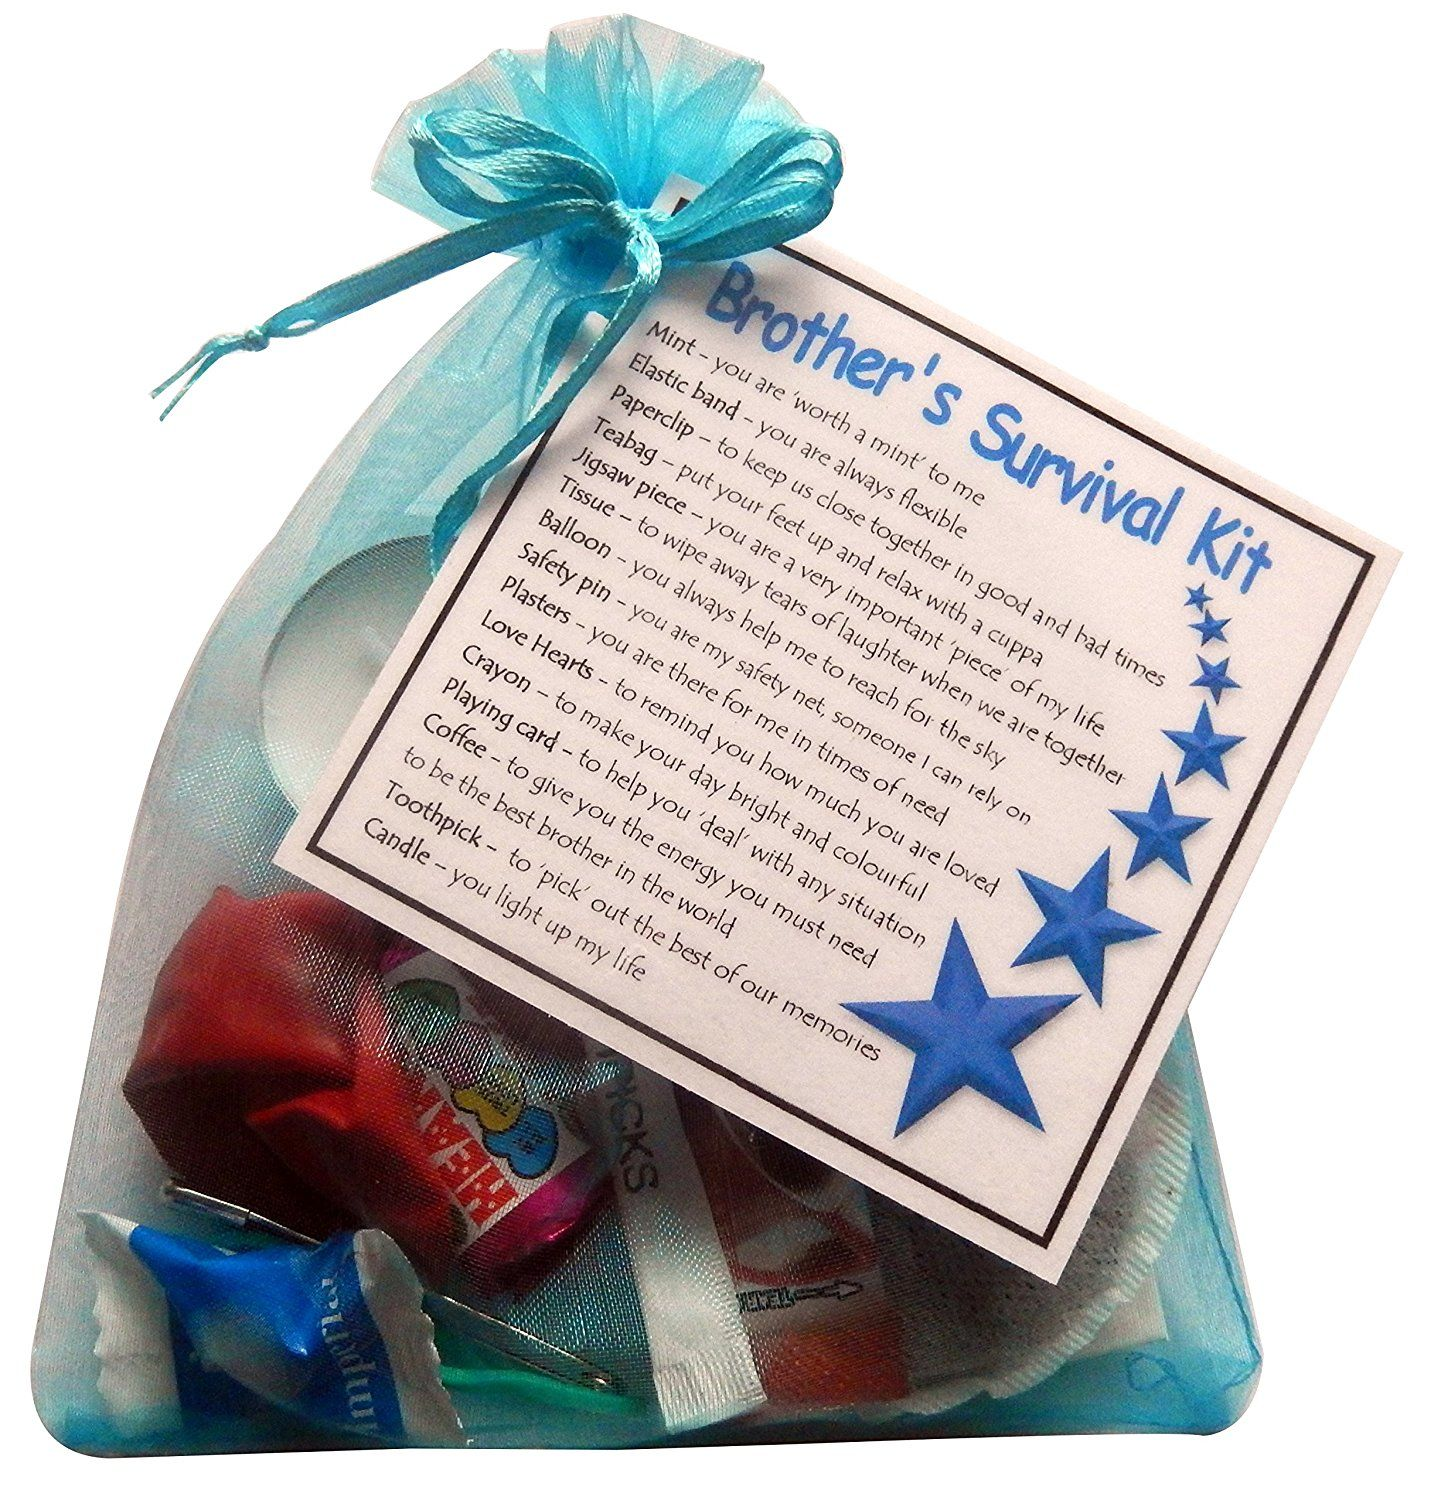 Brothers survival kit gift great novelty gift for